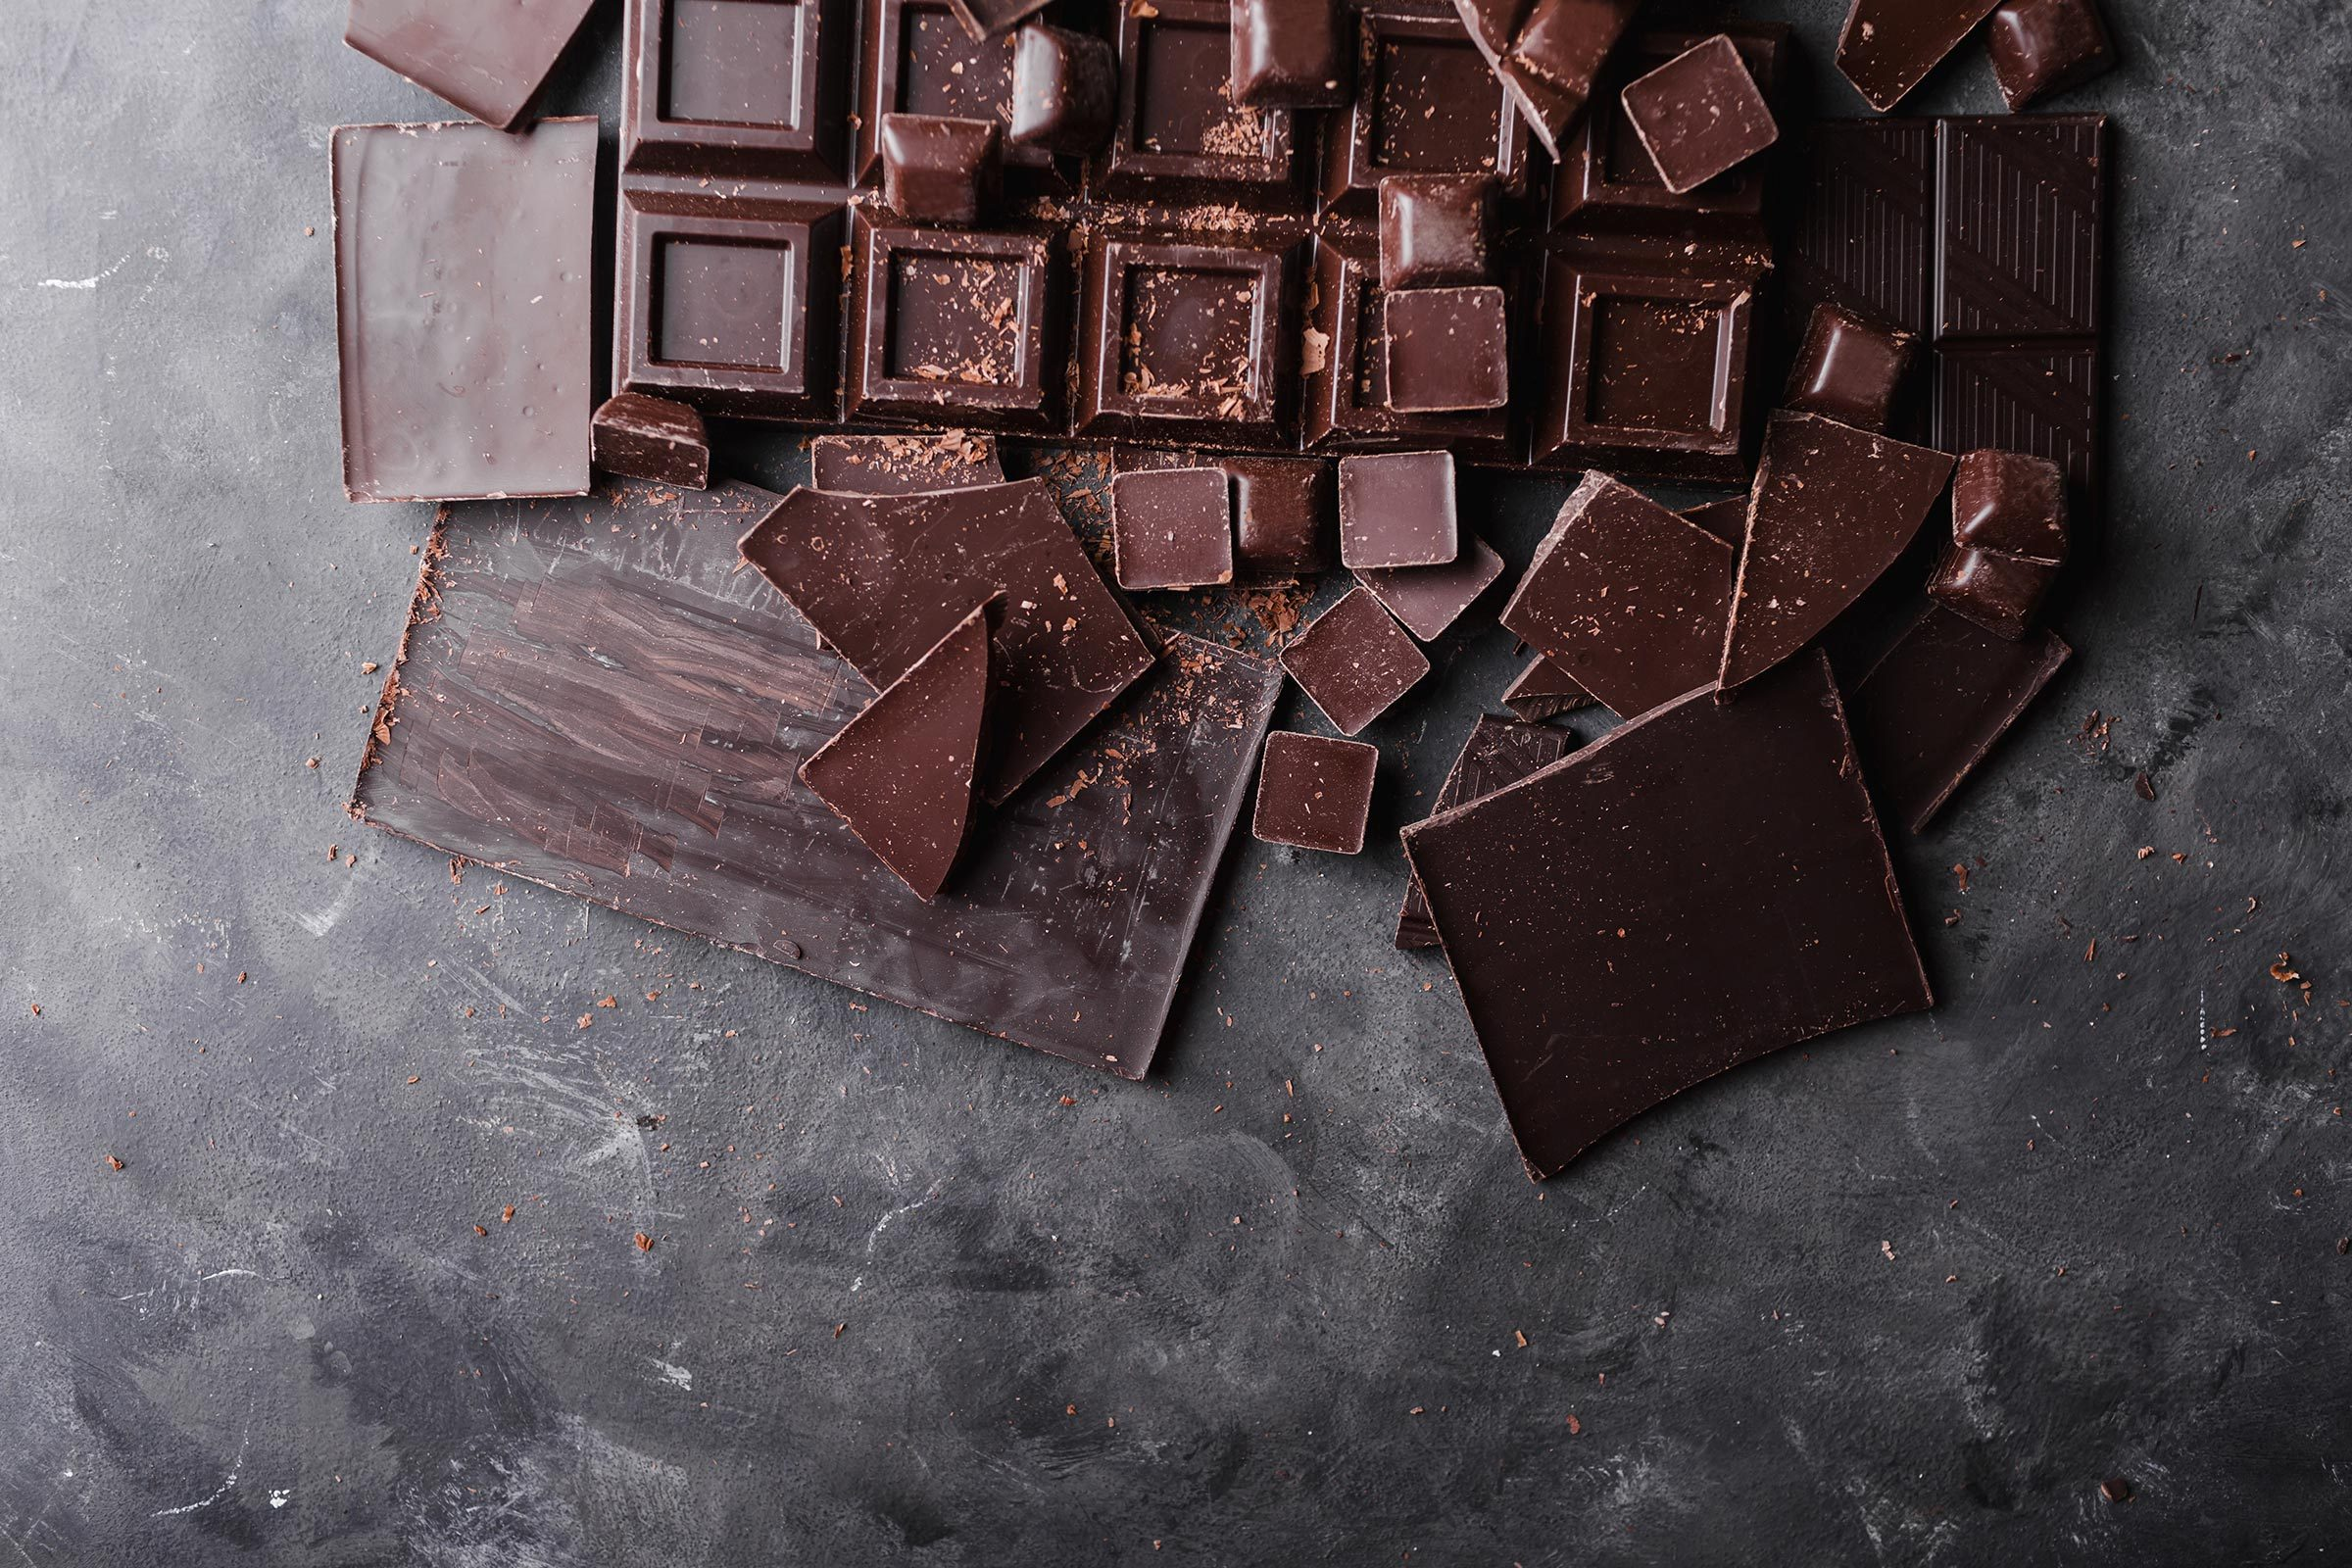 Different sized squares of chocolate